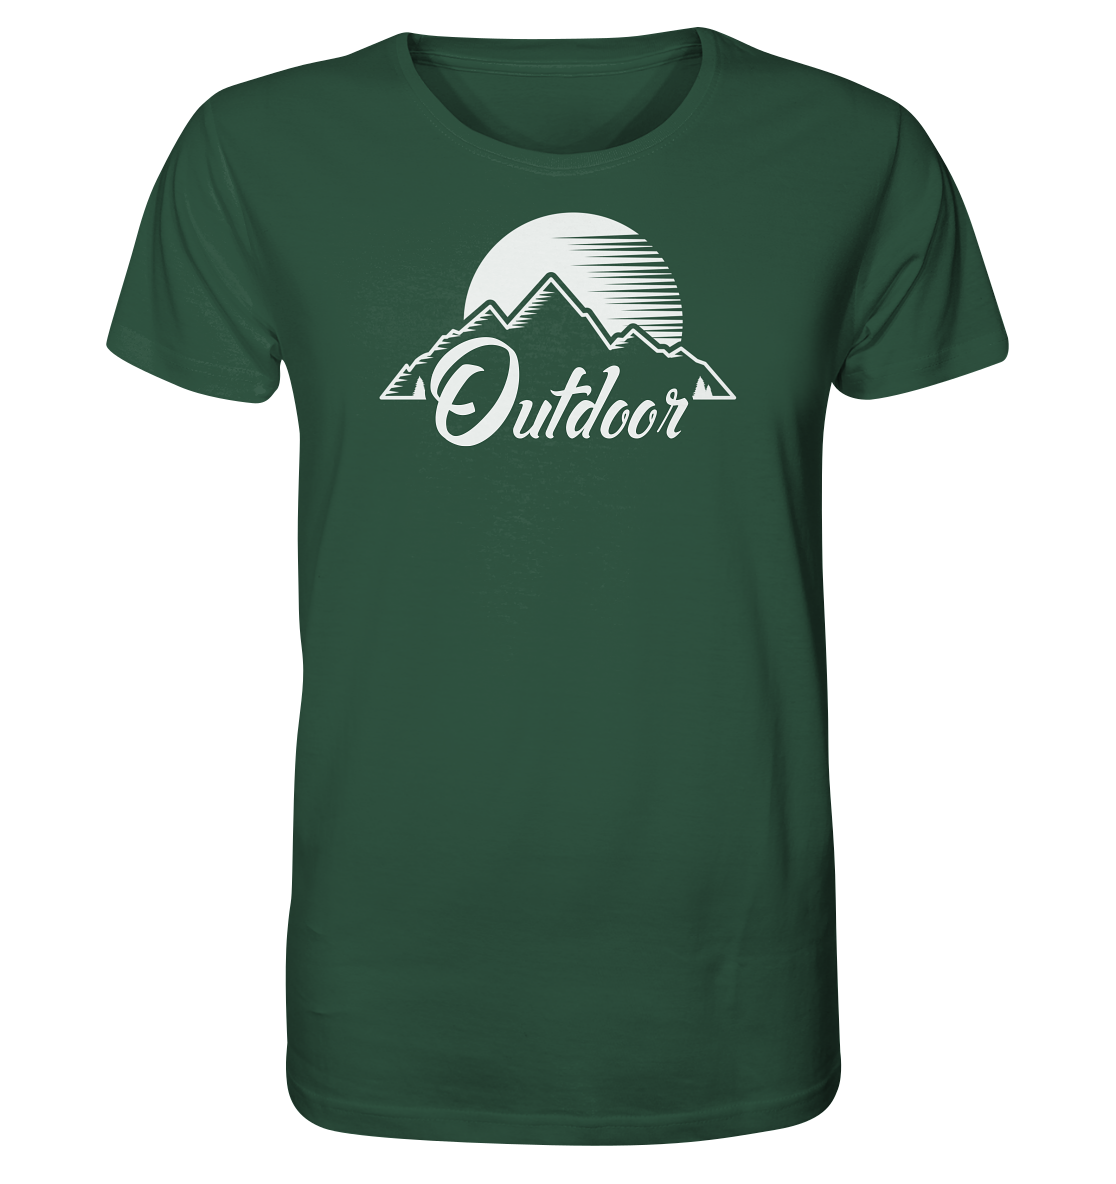 Outdoor - Organic Shirt